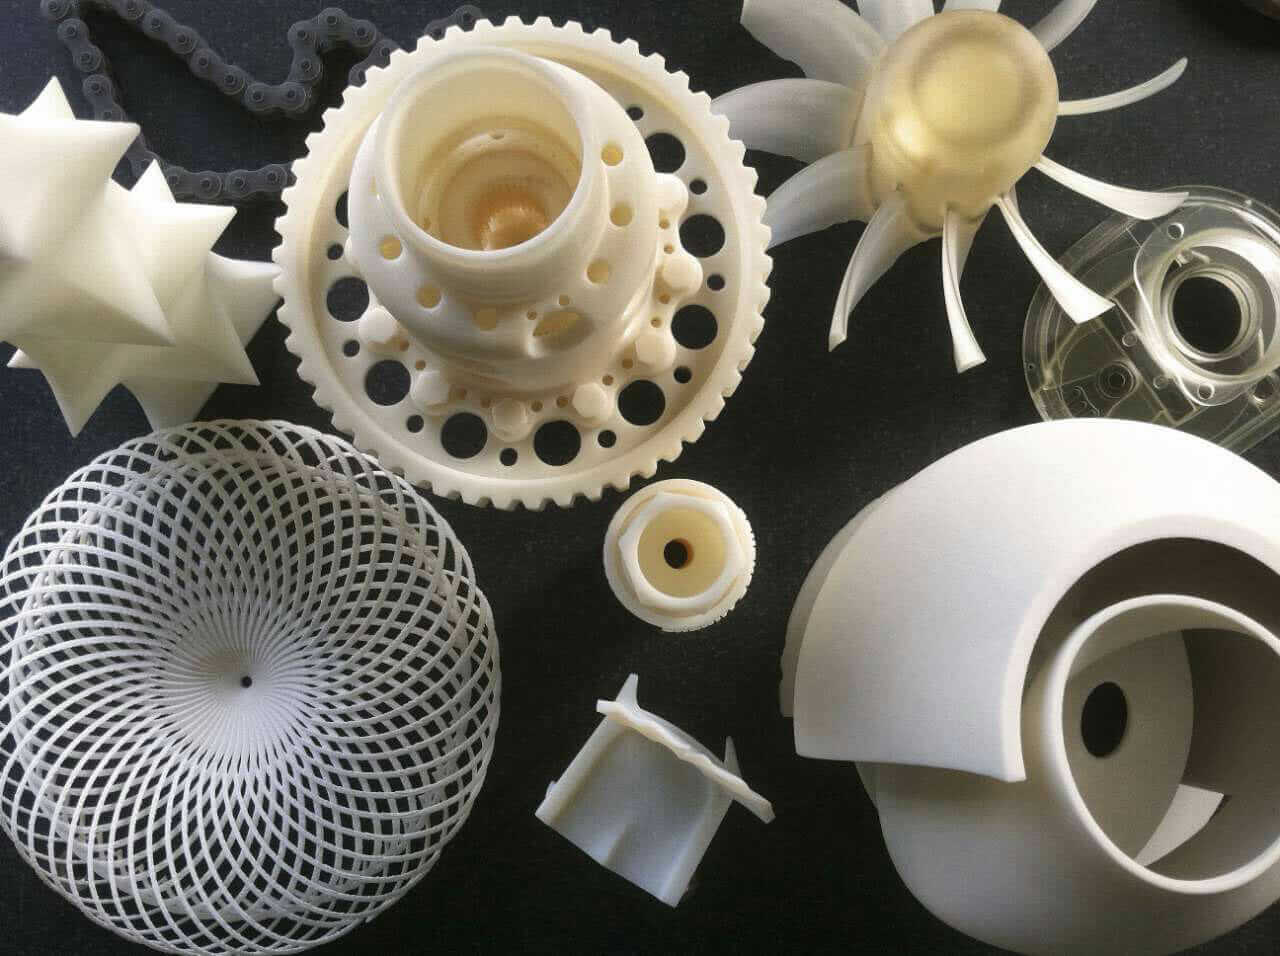 3d-printed objects